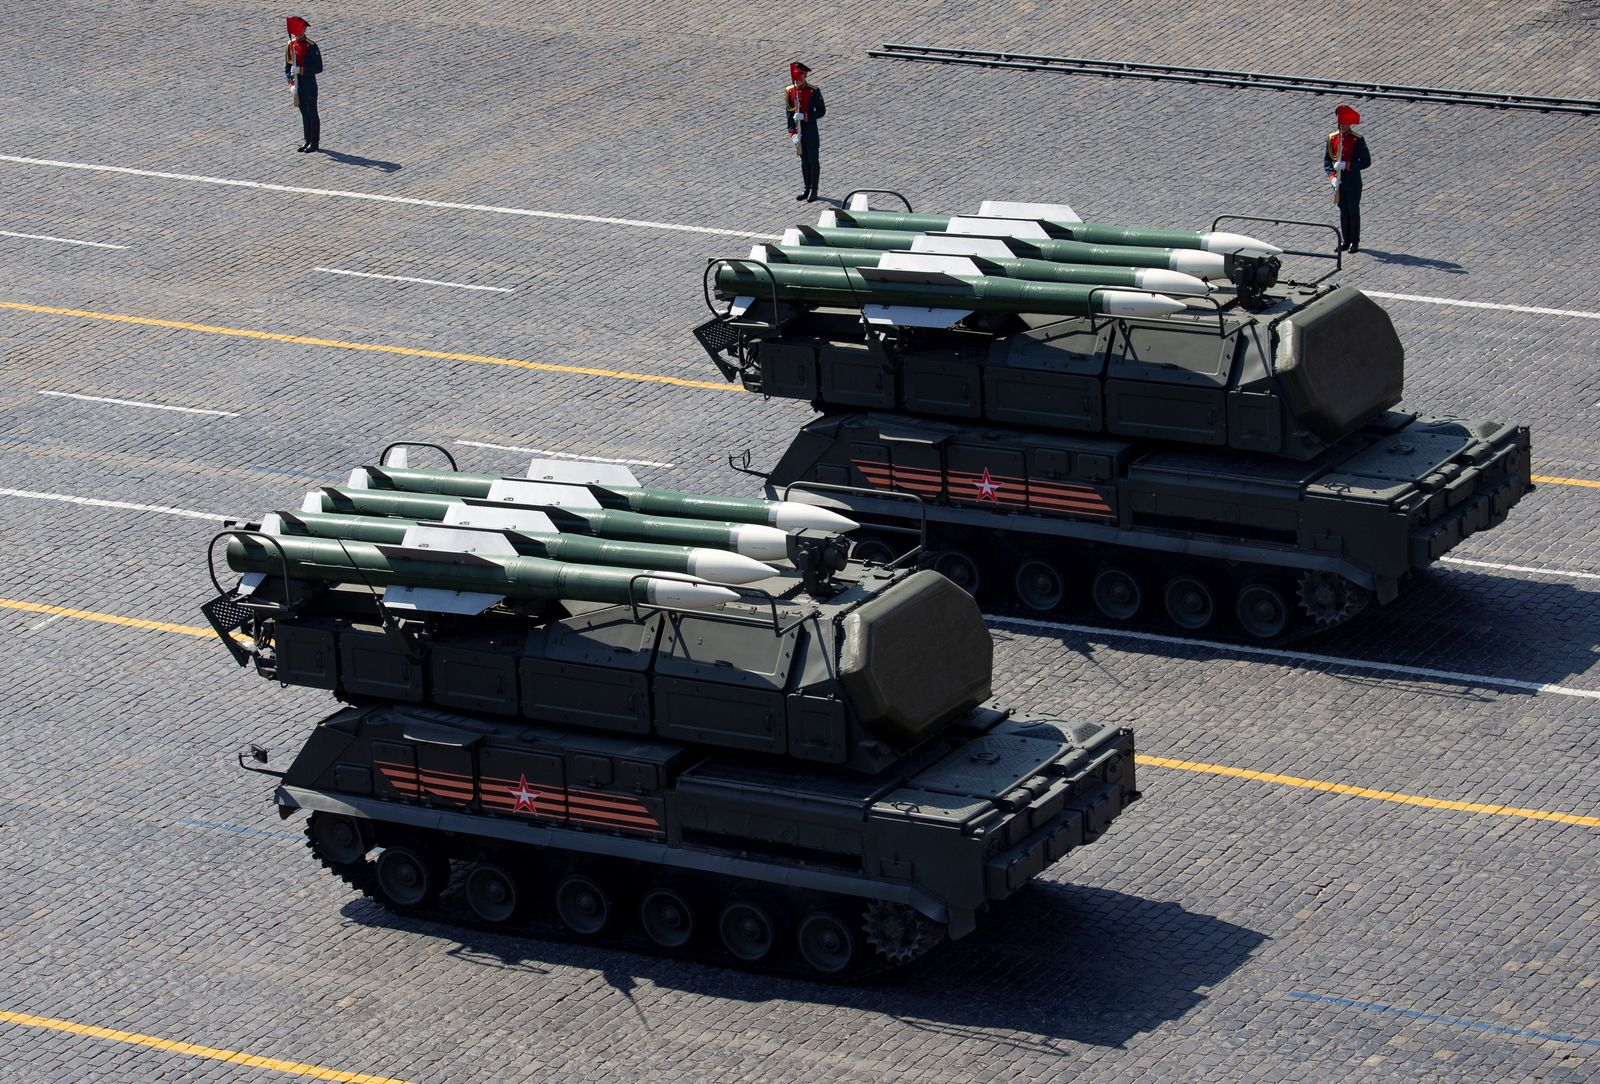 Navy-Killers: Russia is Deploying New Anti-Ship Missiles in Crimea